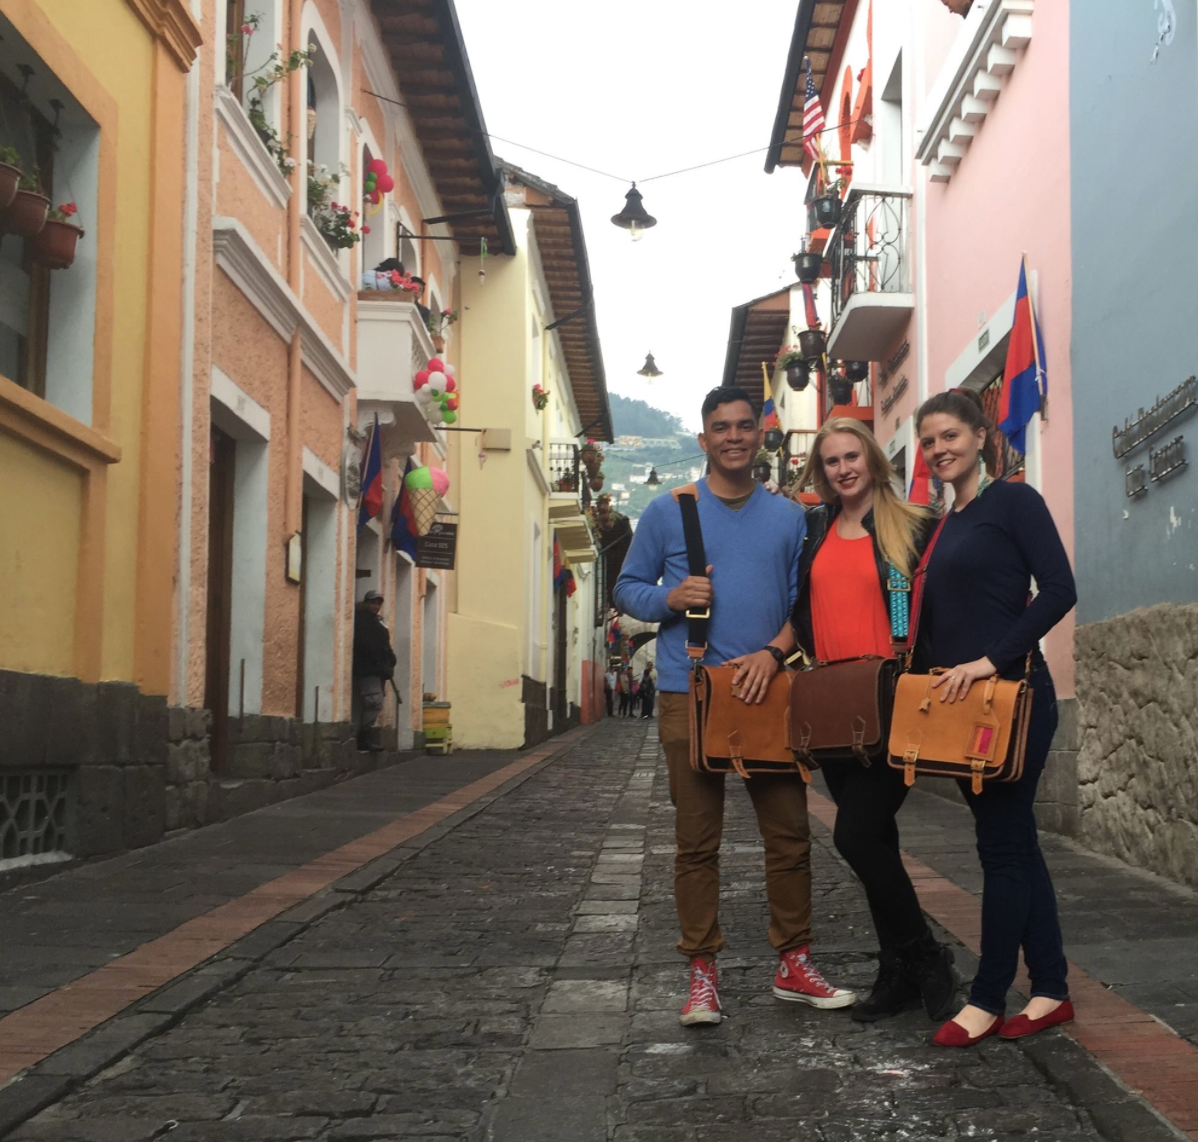 First-generation VerverWerks bags photographed on the streets of Quito.